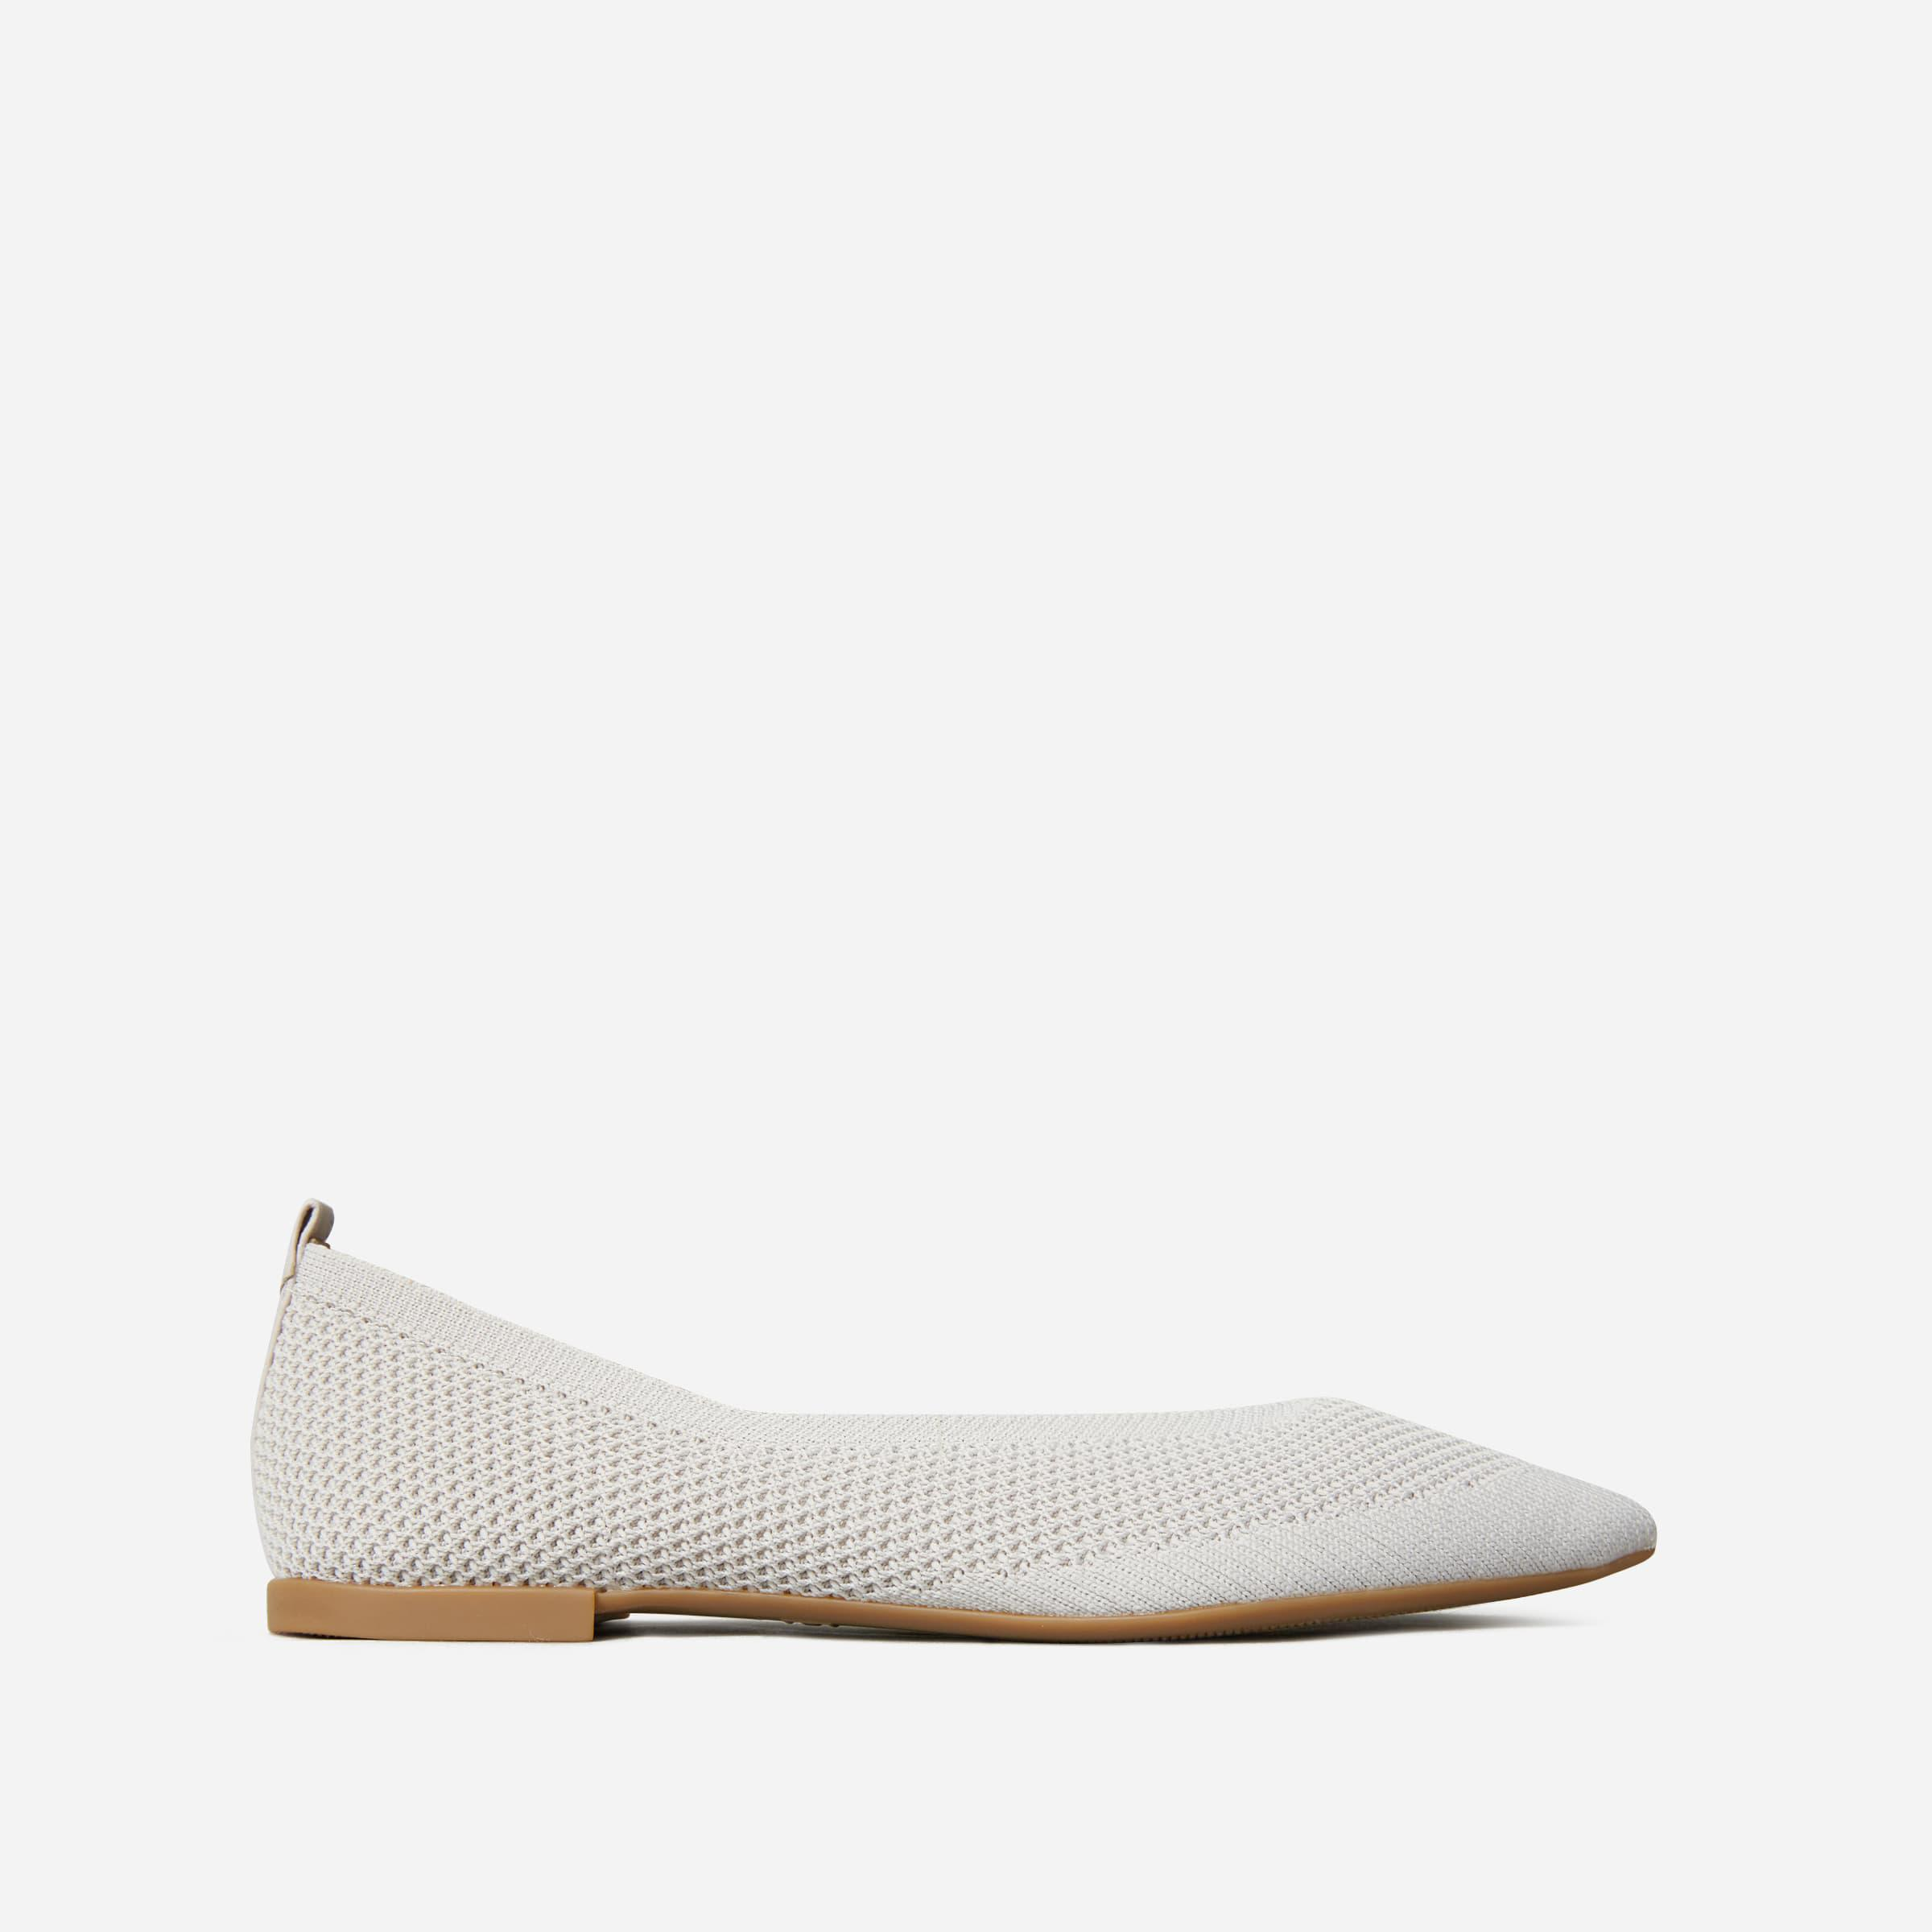 The 40-Hour Flat in ReKnit